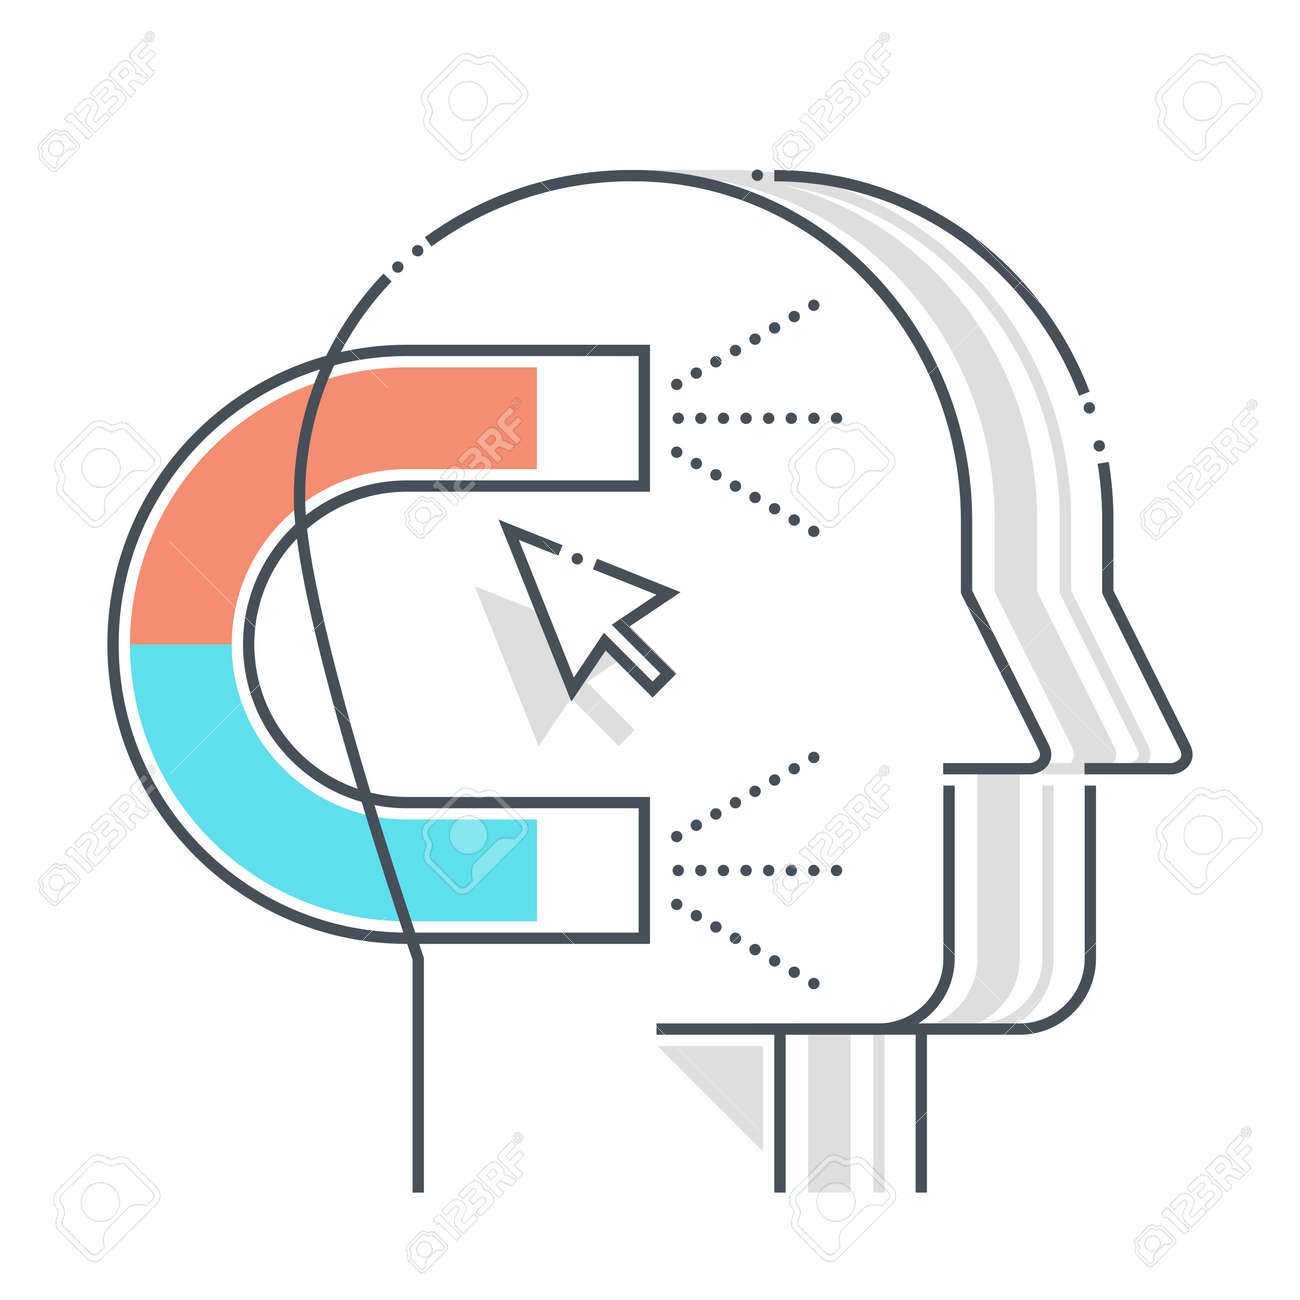 Customer acquisition related color line vector icon, illustration. The icon is about advertisement, cursor, magnet, marketing, solution, clients. The composition is infinitely scalable. - 163698061